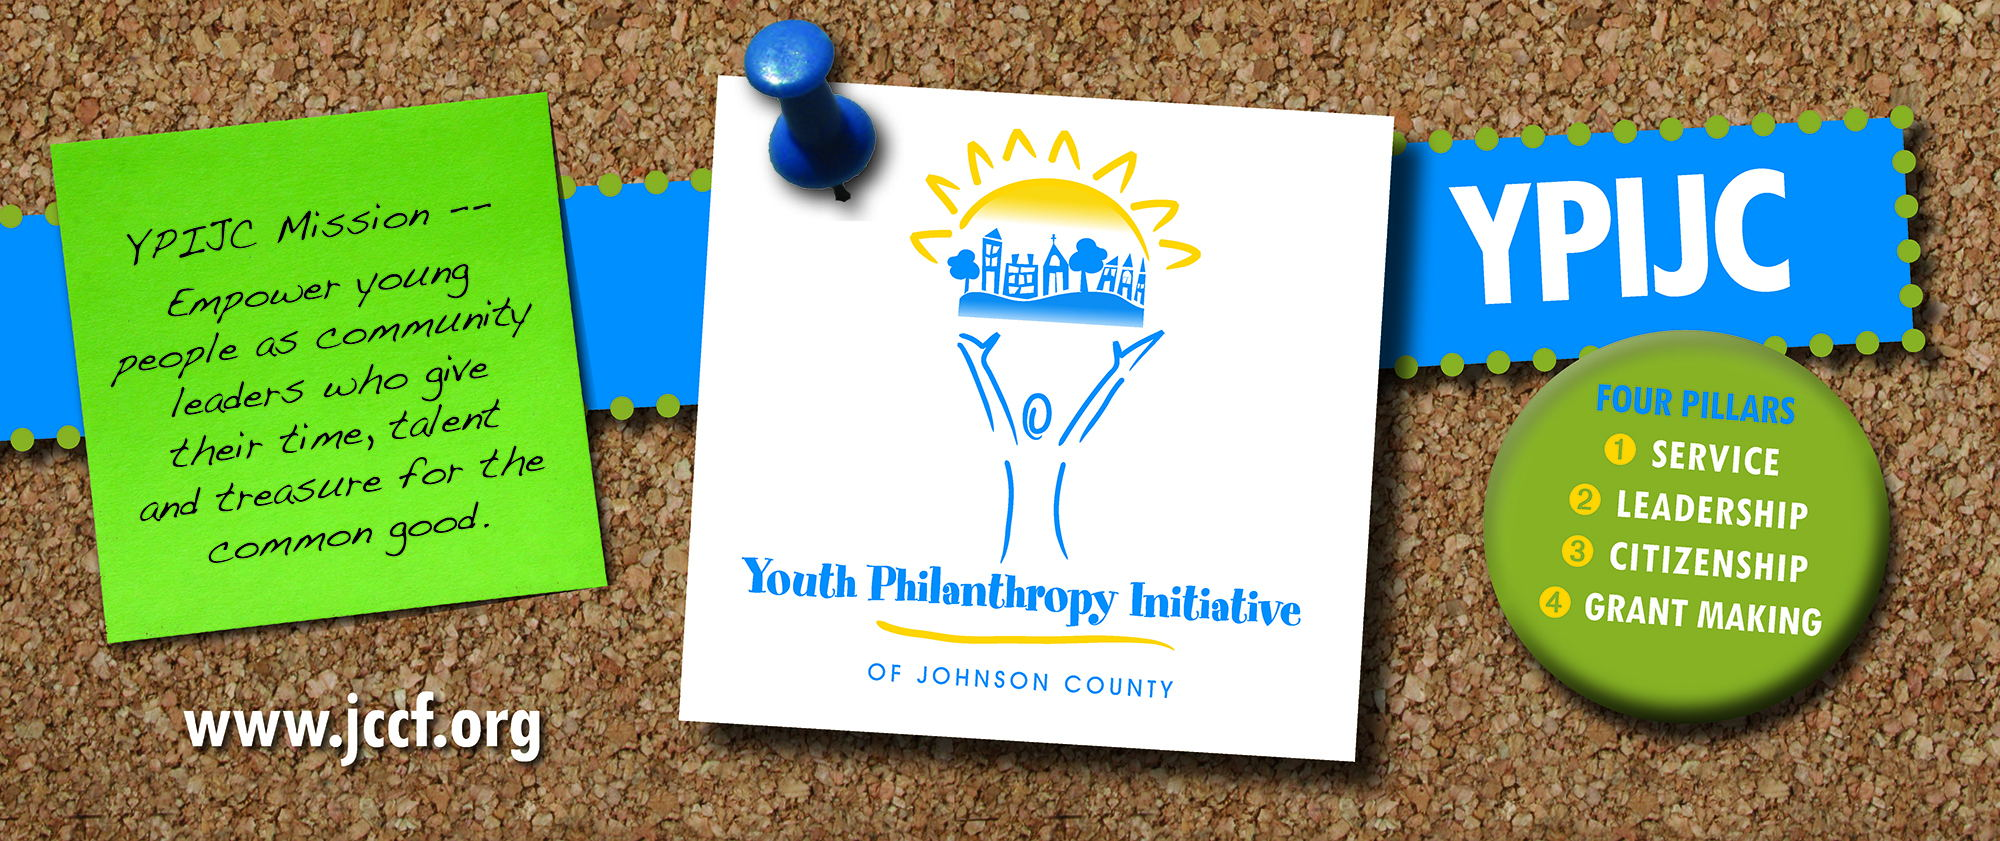 Youth Philanthropy Initiative of Johnson County mission